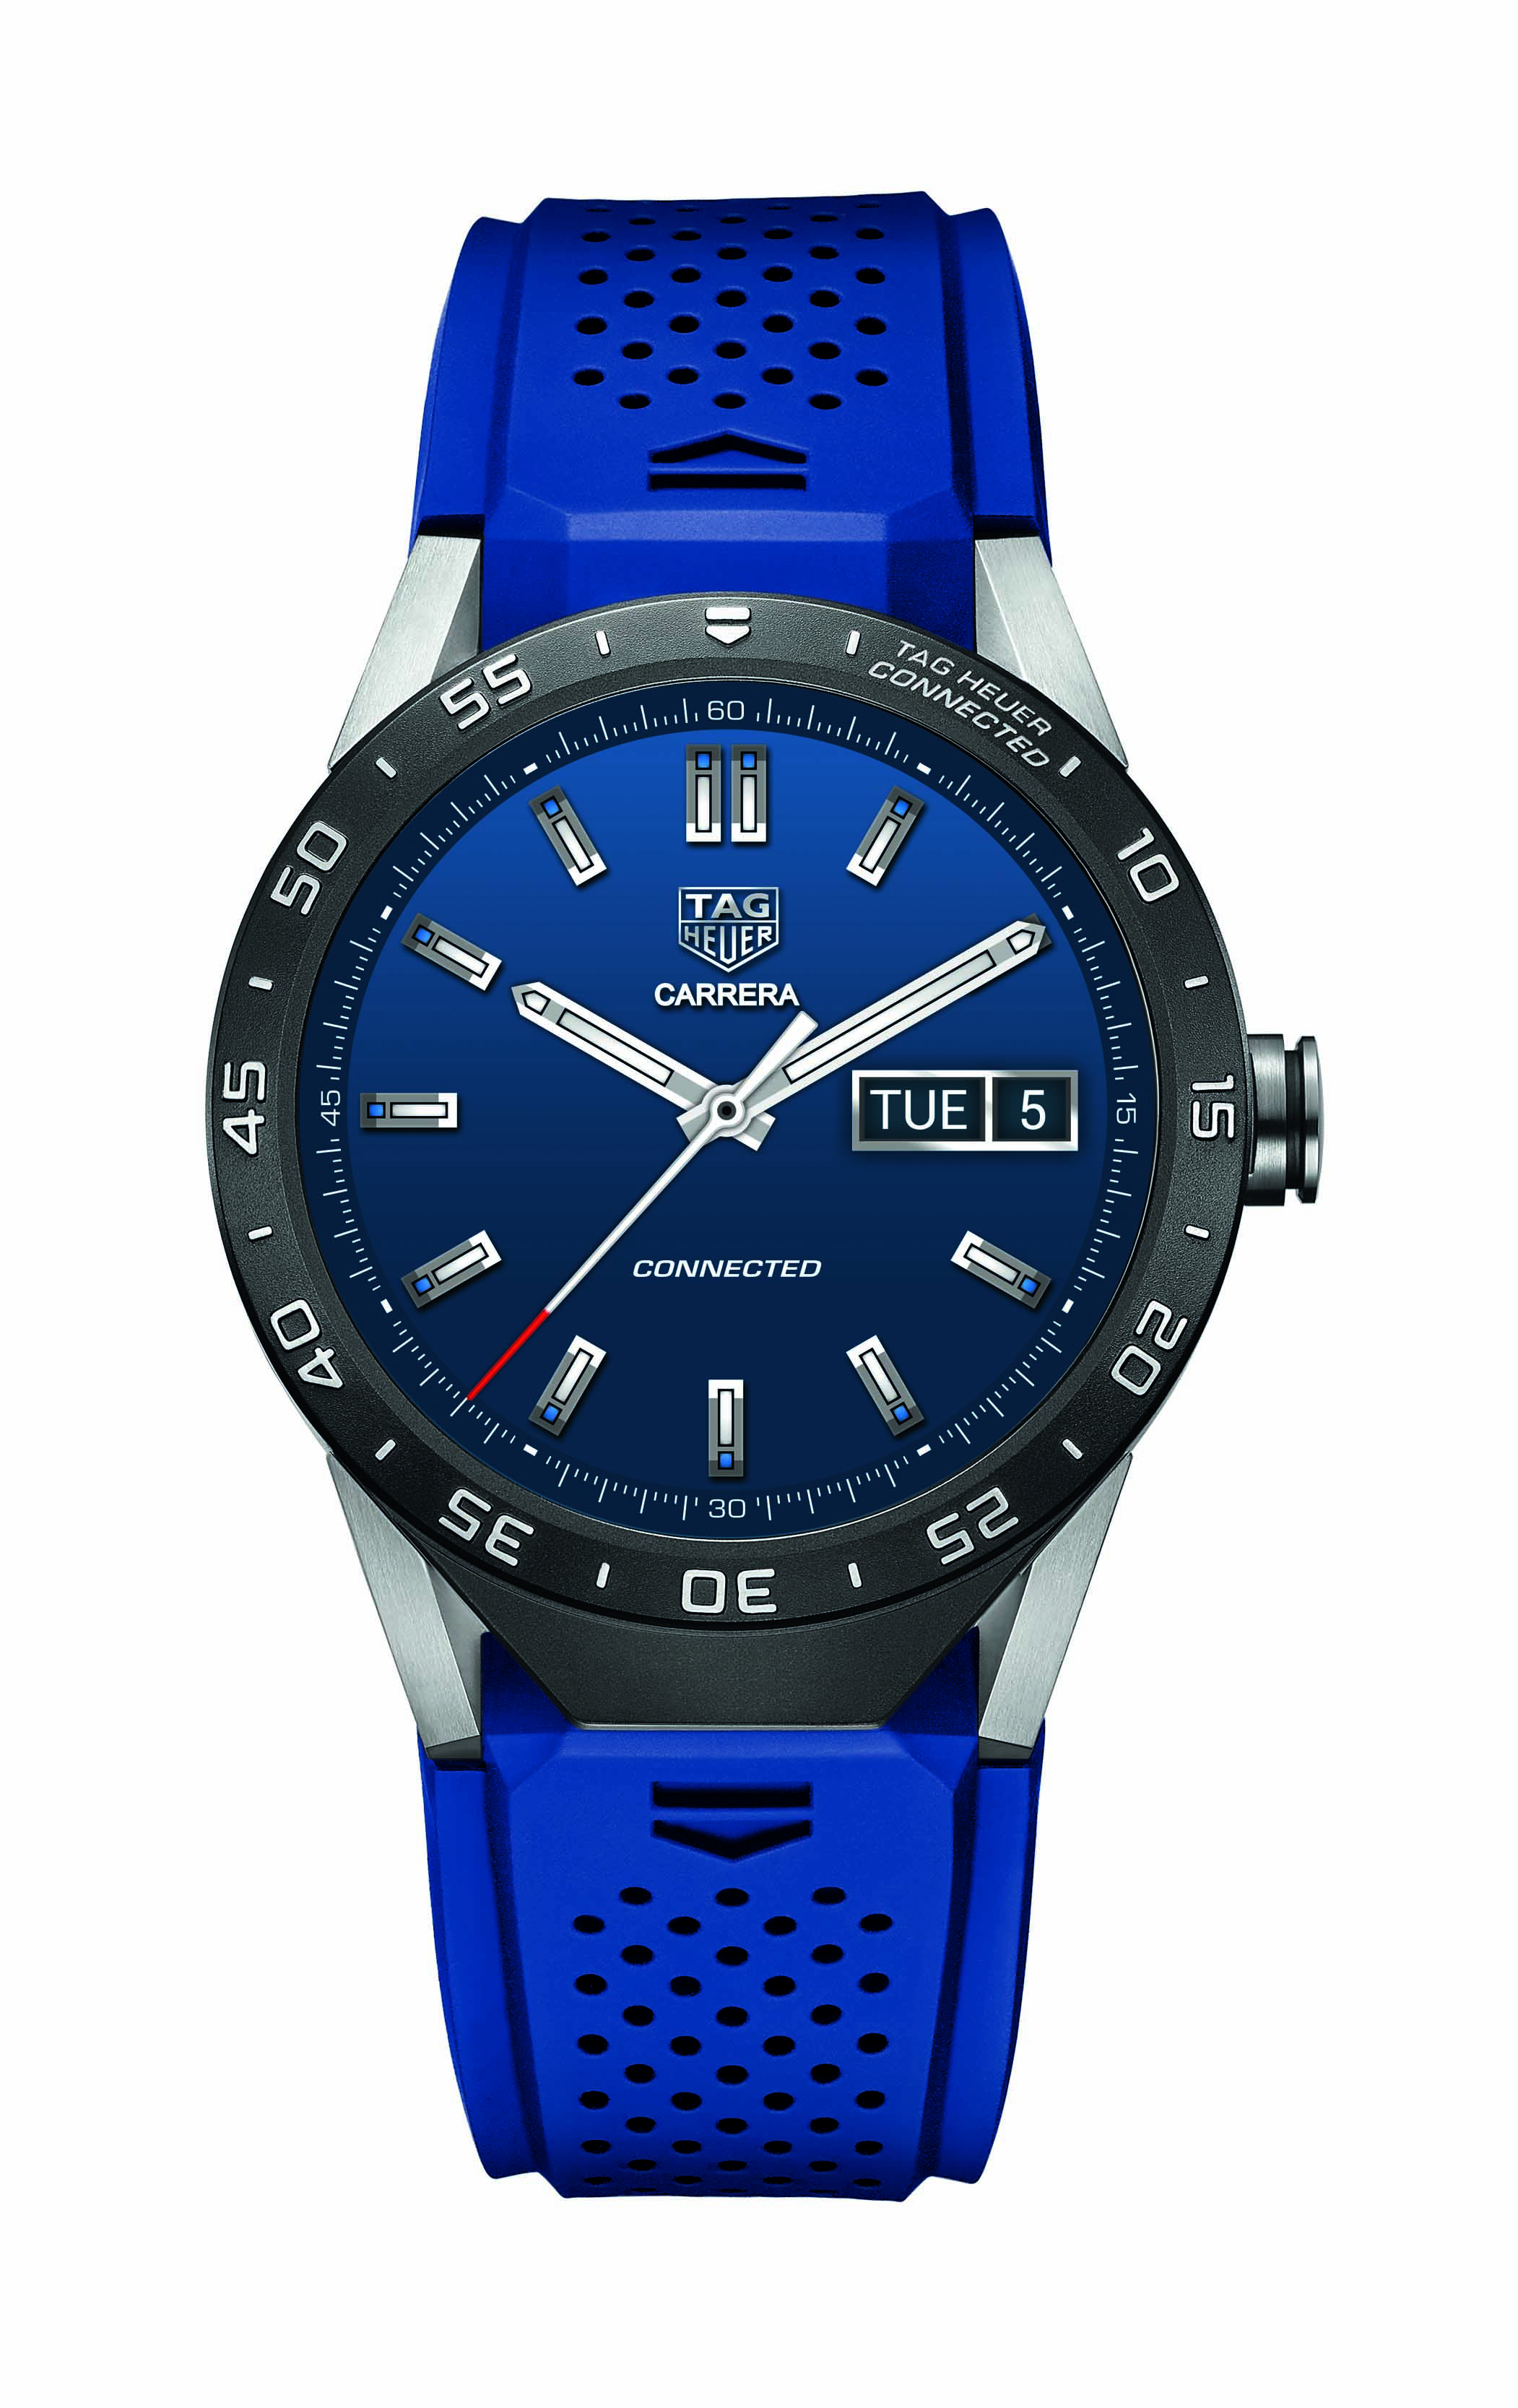 SAR8A80.FT6058 - BLUE - DIAL ON 2015